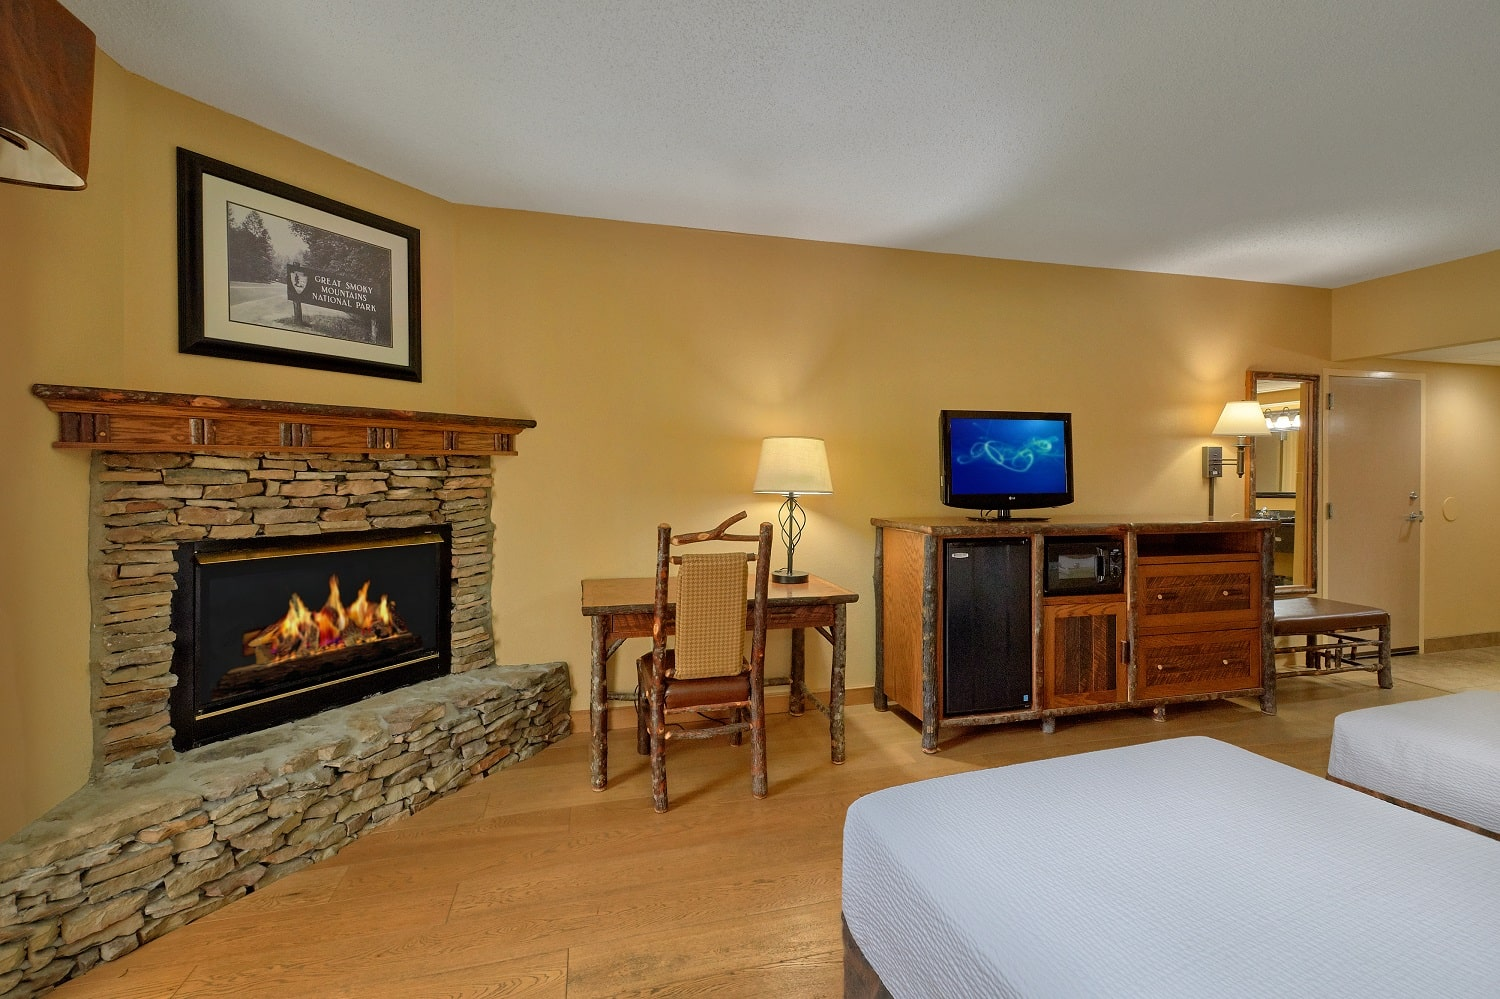 Two queen beds in a room with a fireplace